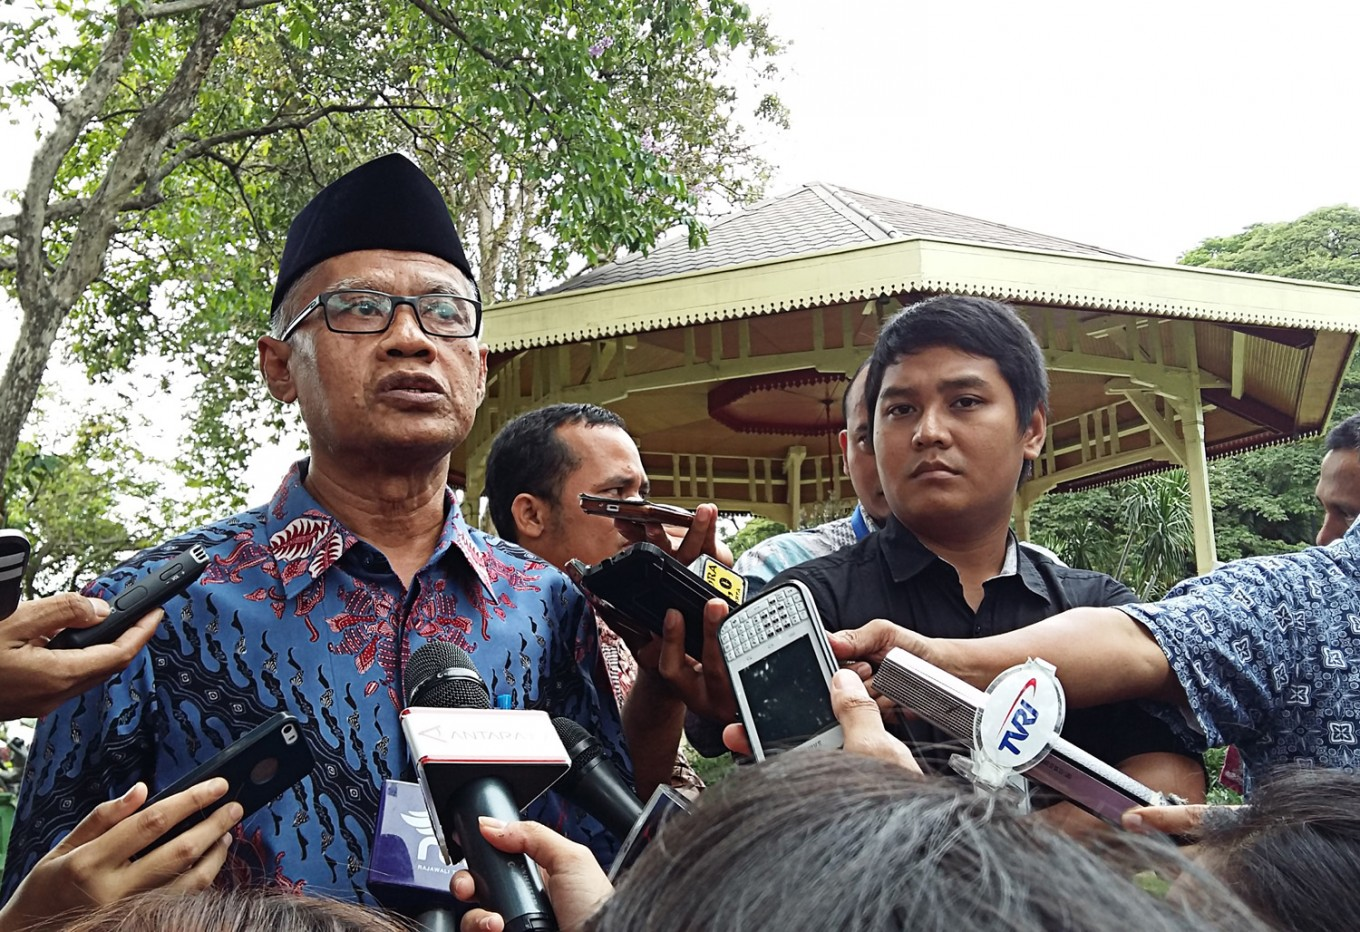 Muhammadiyah to mobilize members to fight extremism